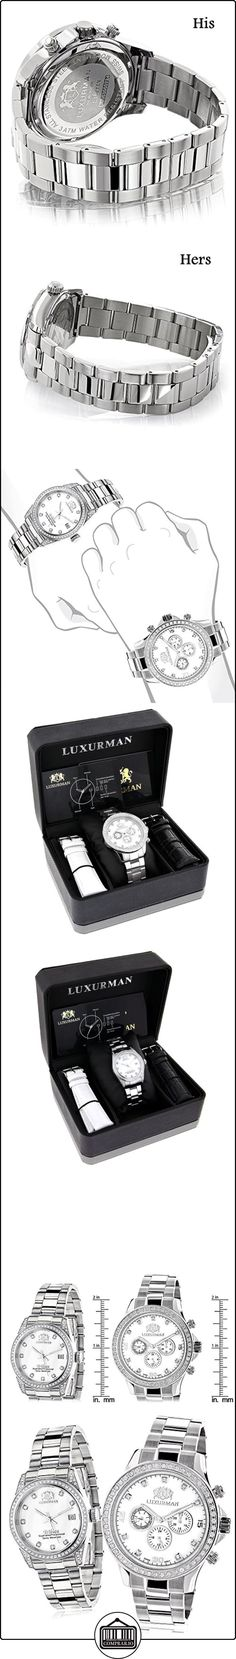 His and Hers Watches: White Gold Pltd LUXURMAN Diamond Watch Set 3.5ct  ✿ Relojes para mujer - (Lujo) ✿